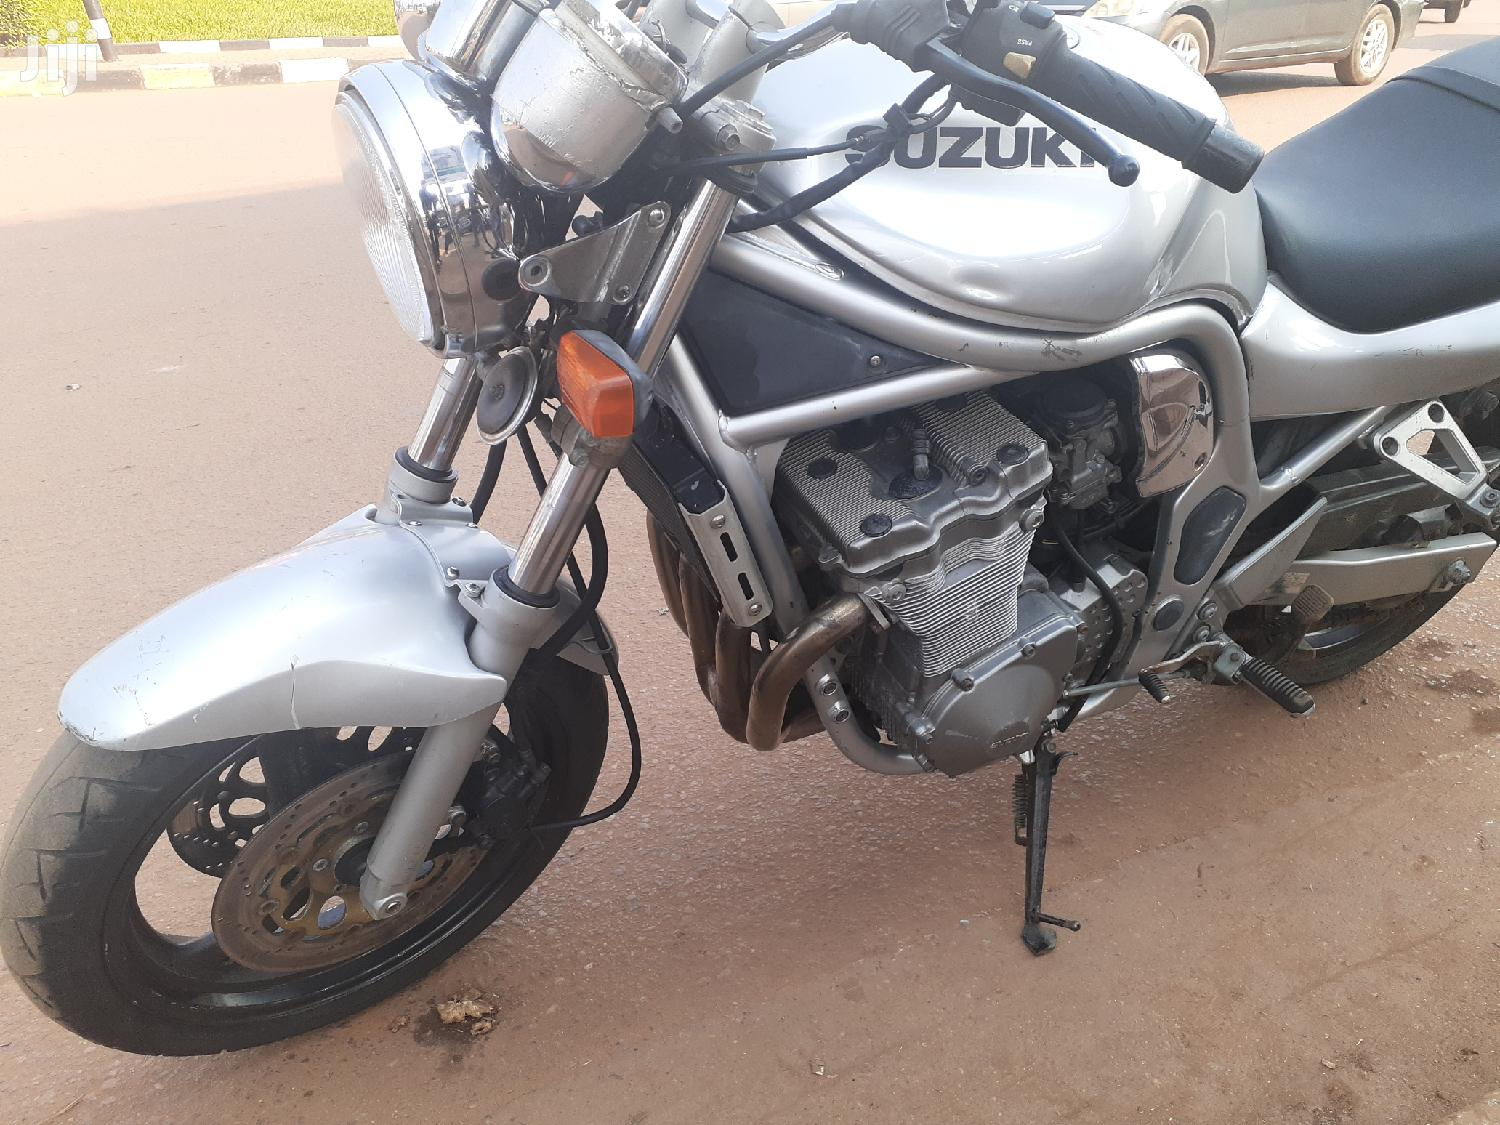 Suzuki 750 2000 Silver | Motorcycles & Scooters for sale in Kampala, Central Region, Uganda